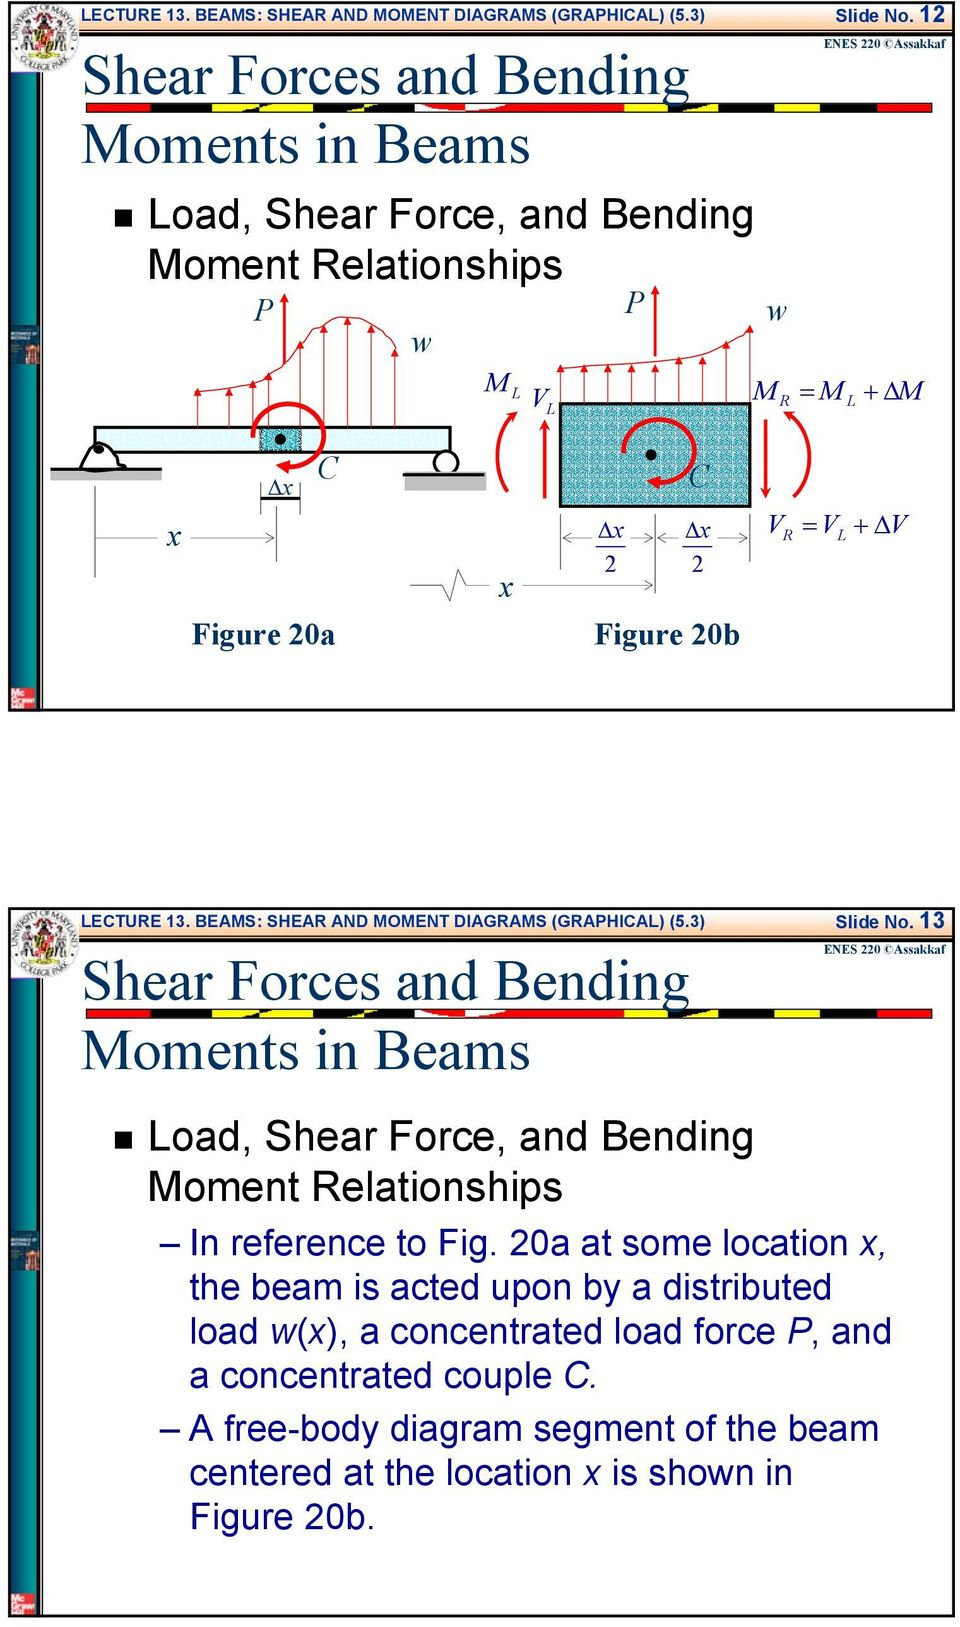 Beams Shear And Moment Diagrams Graphical Pdf Beam 0a At Some Location The Is Acted Upon By A Distributed Load W